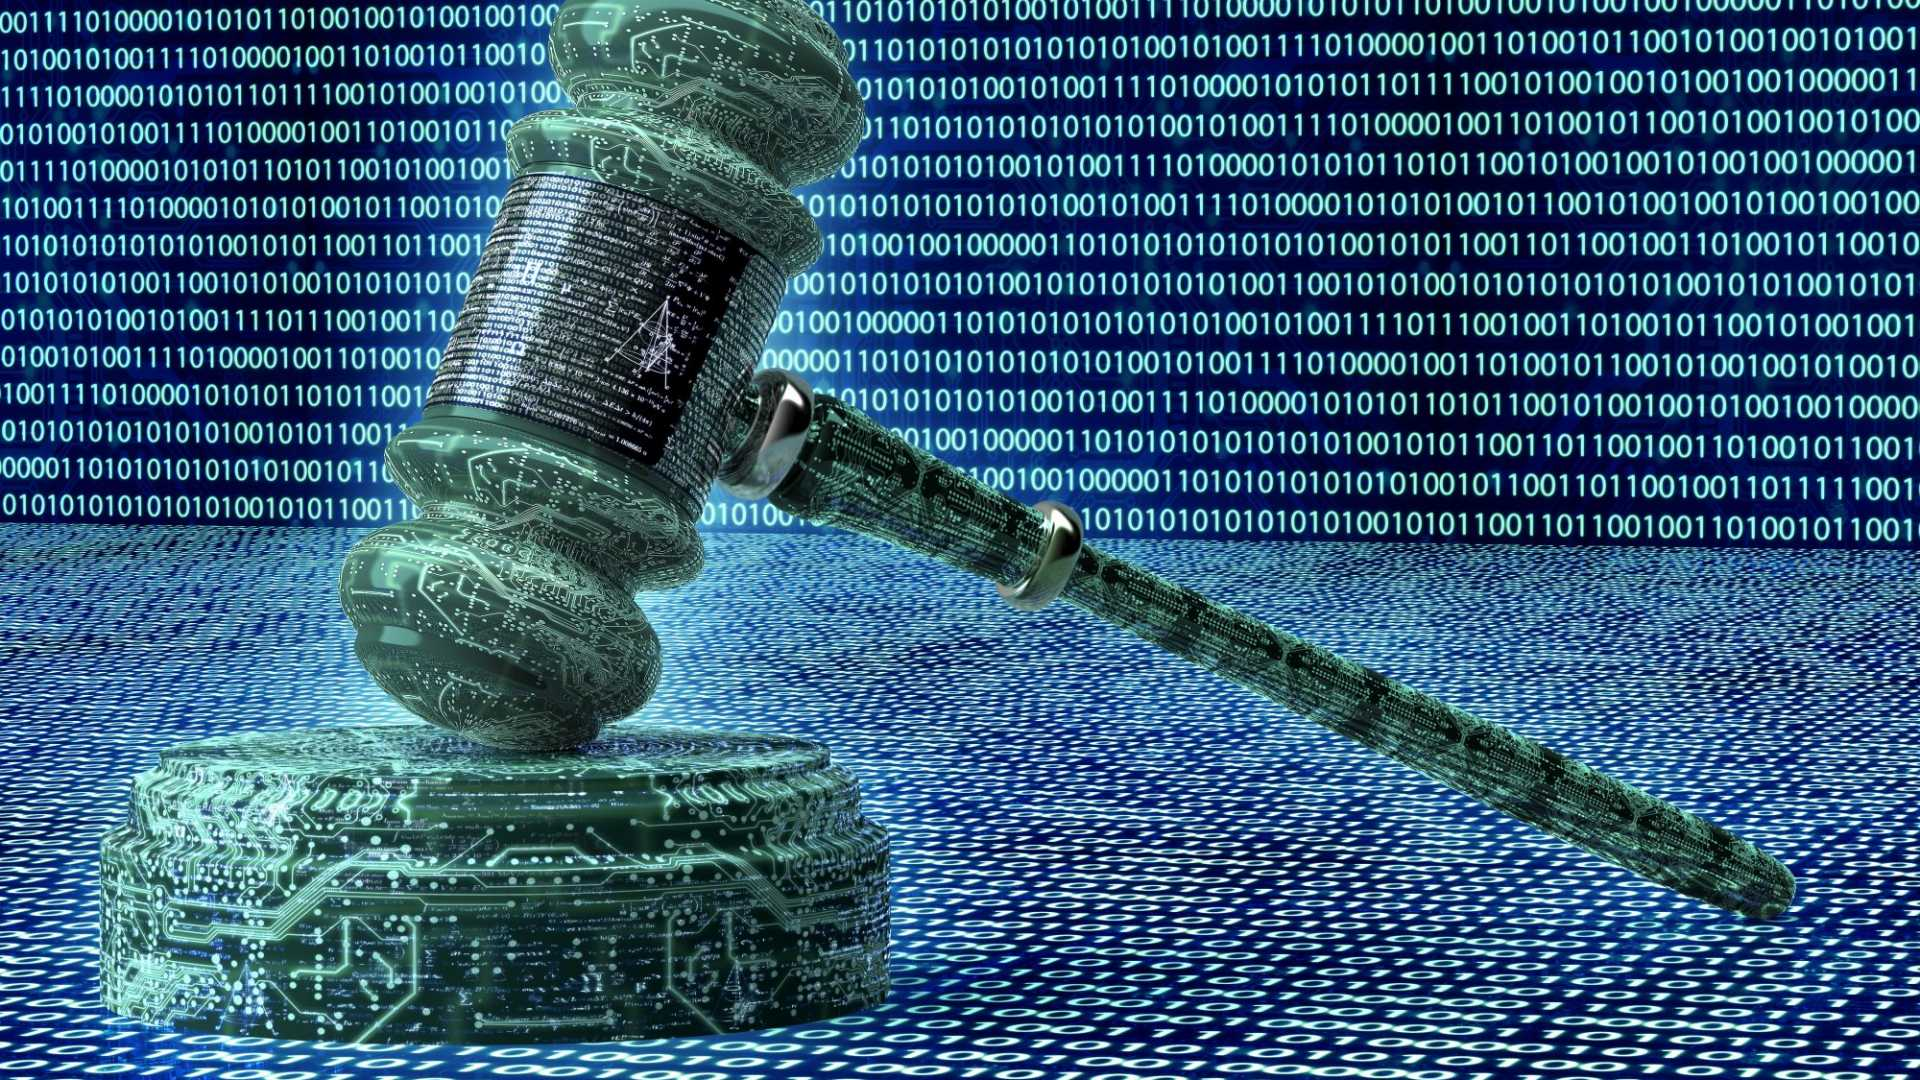 A.I. Can Boost Your Legal Department's Productivity and Cut Costs